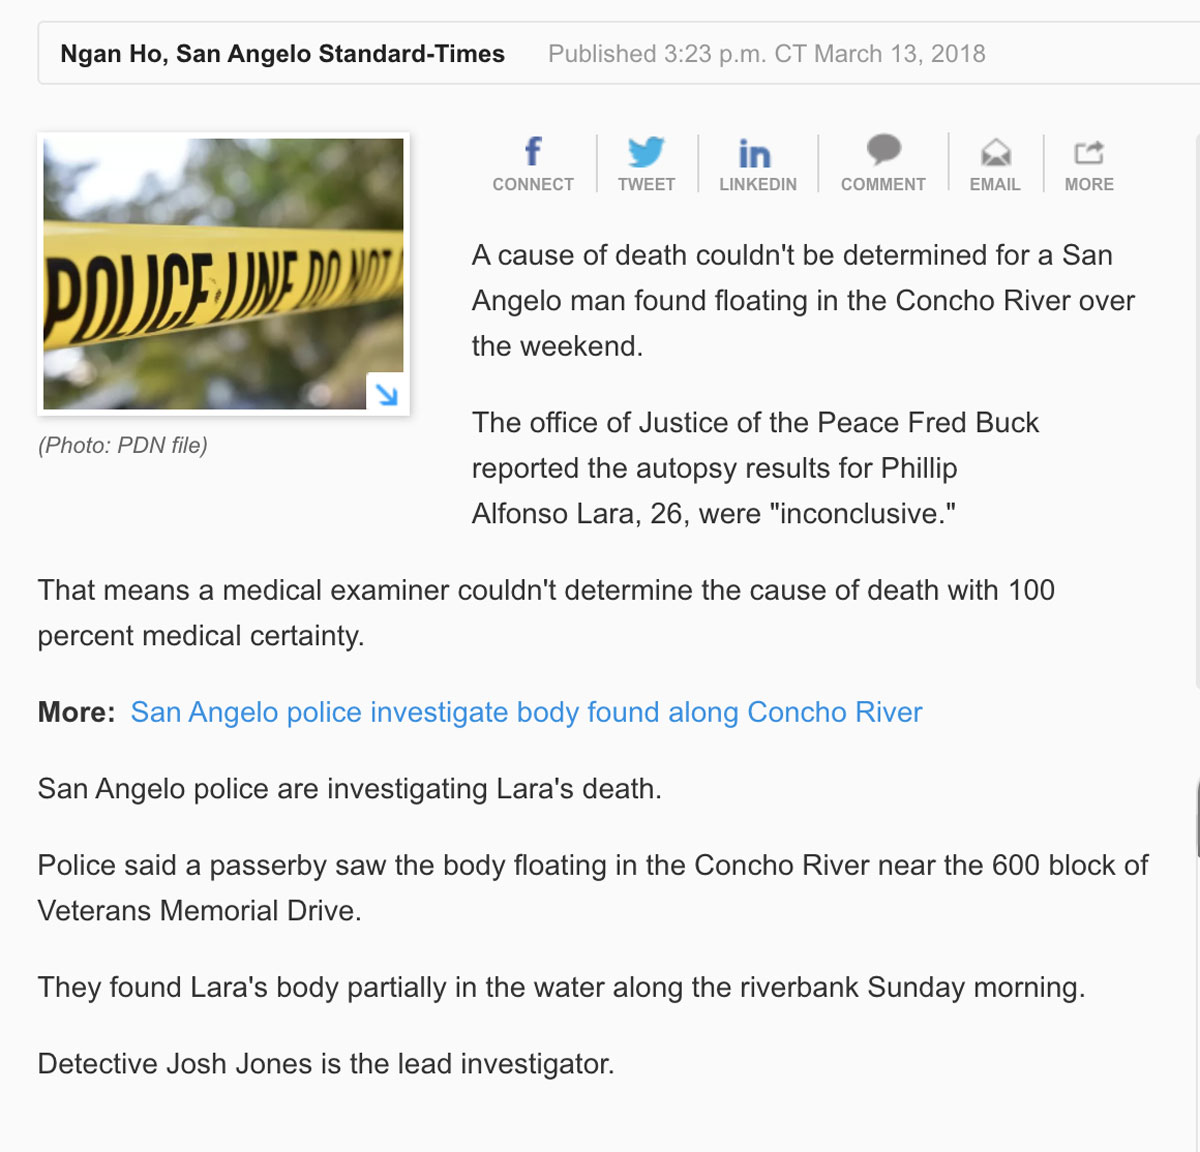 The inaccurate Gannett San Angelo Standard-Times article.